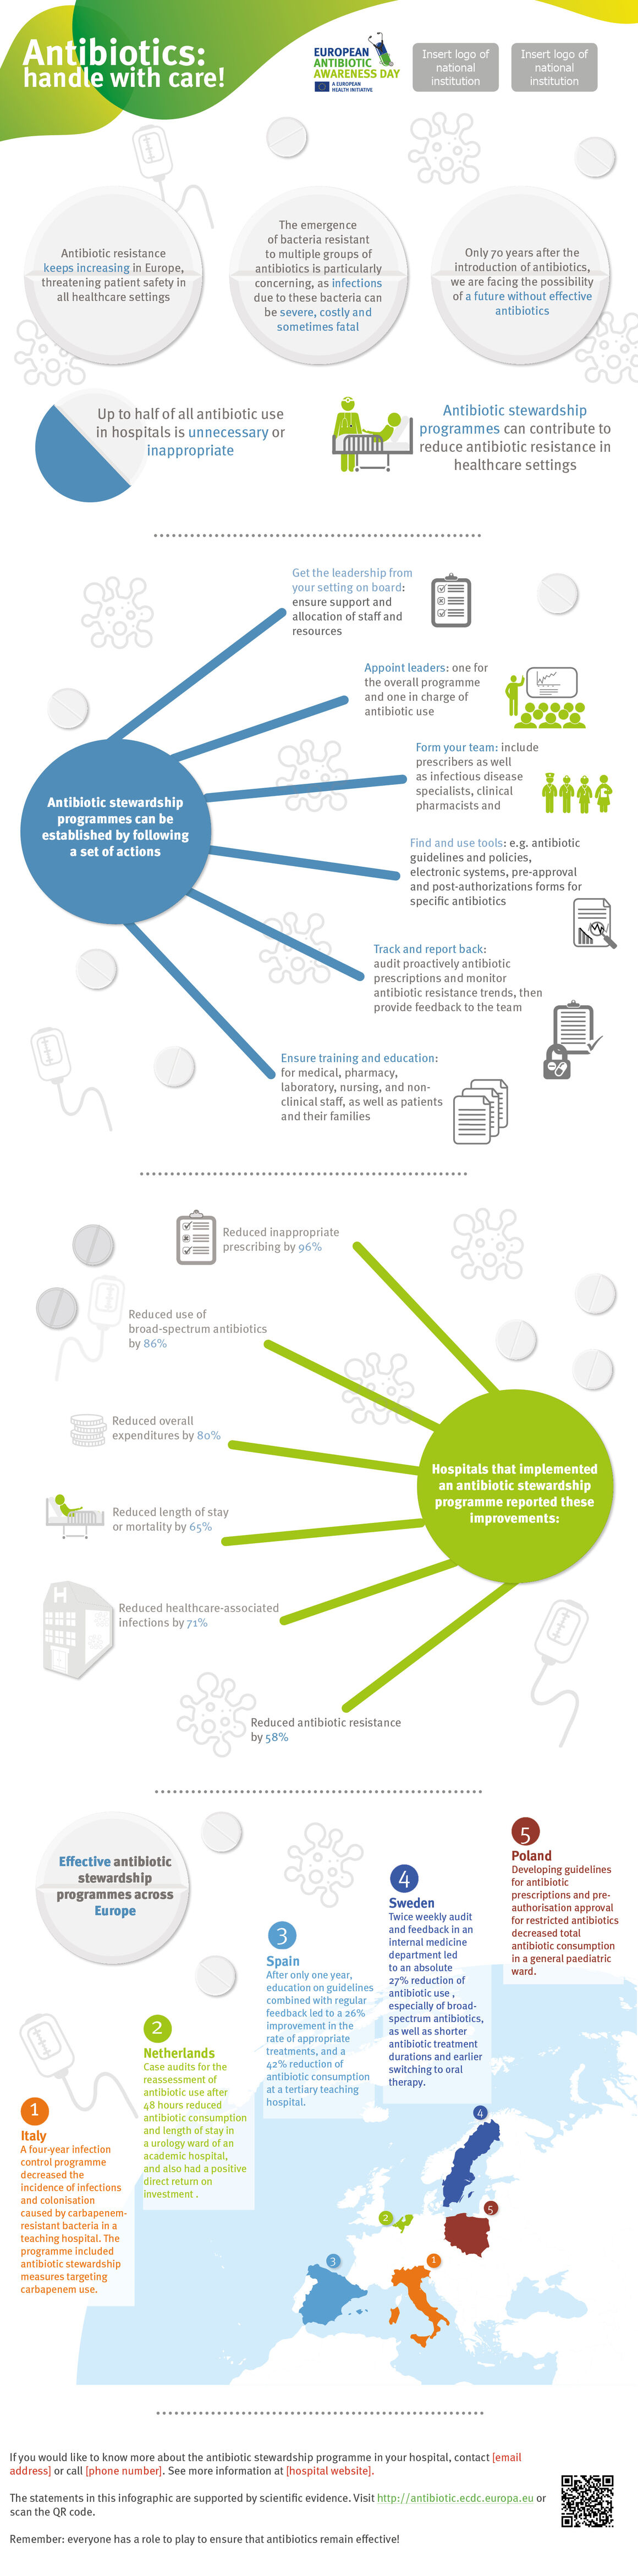 Infographics about antibiotic stewardship programmes